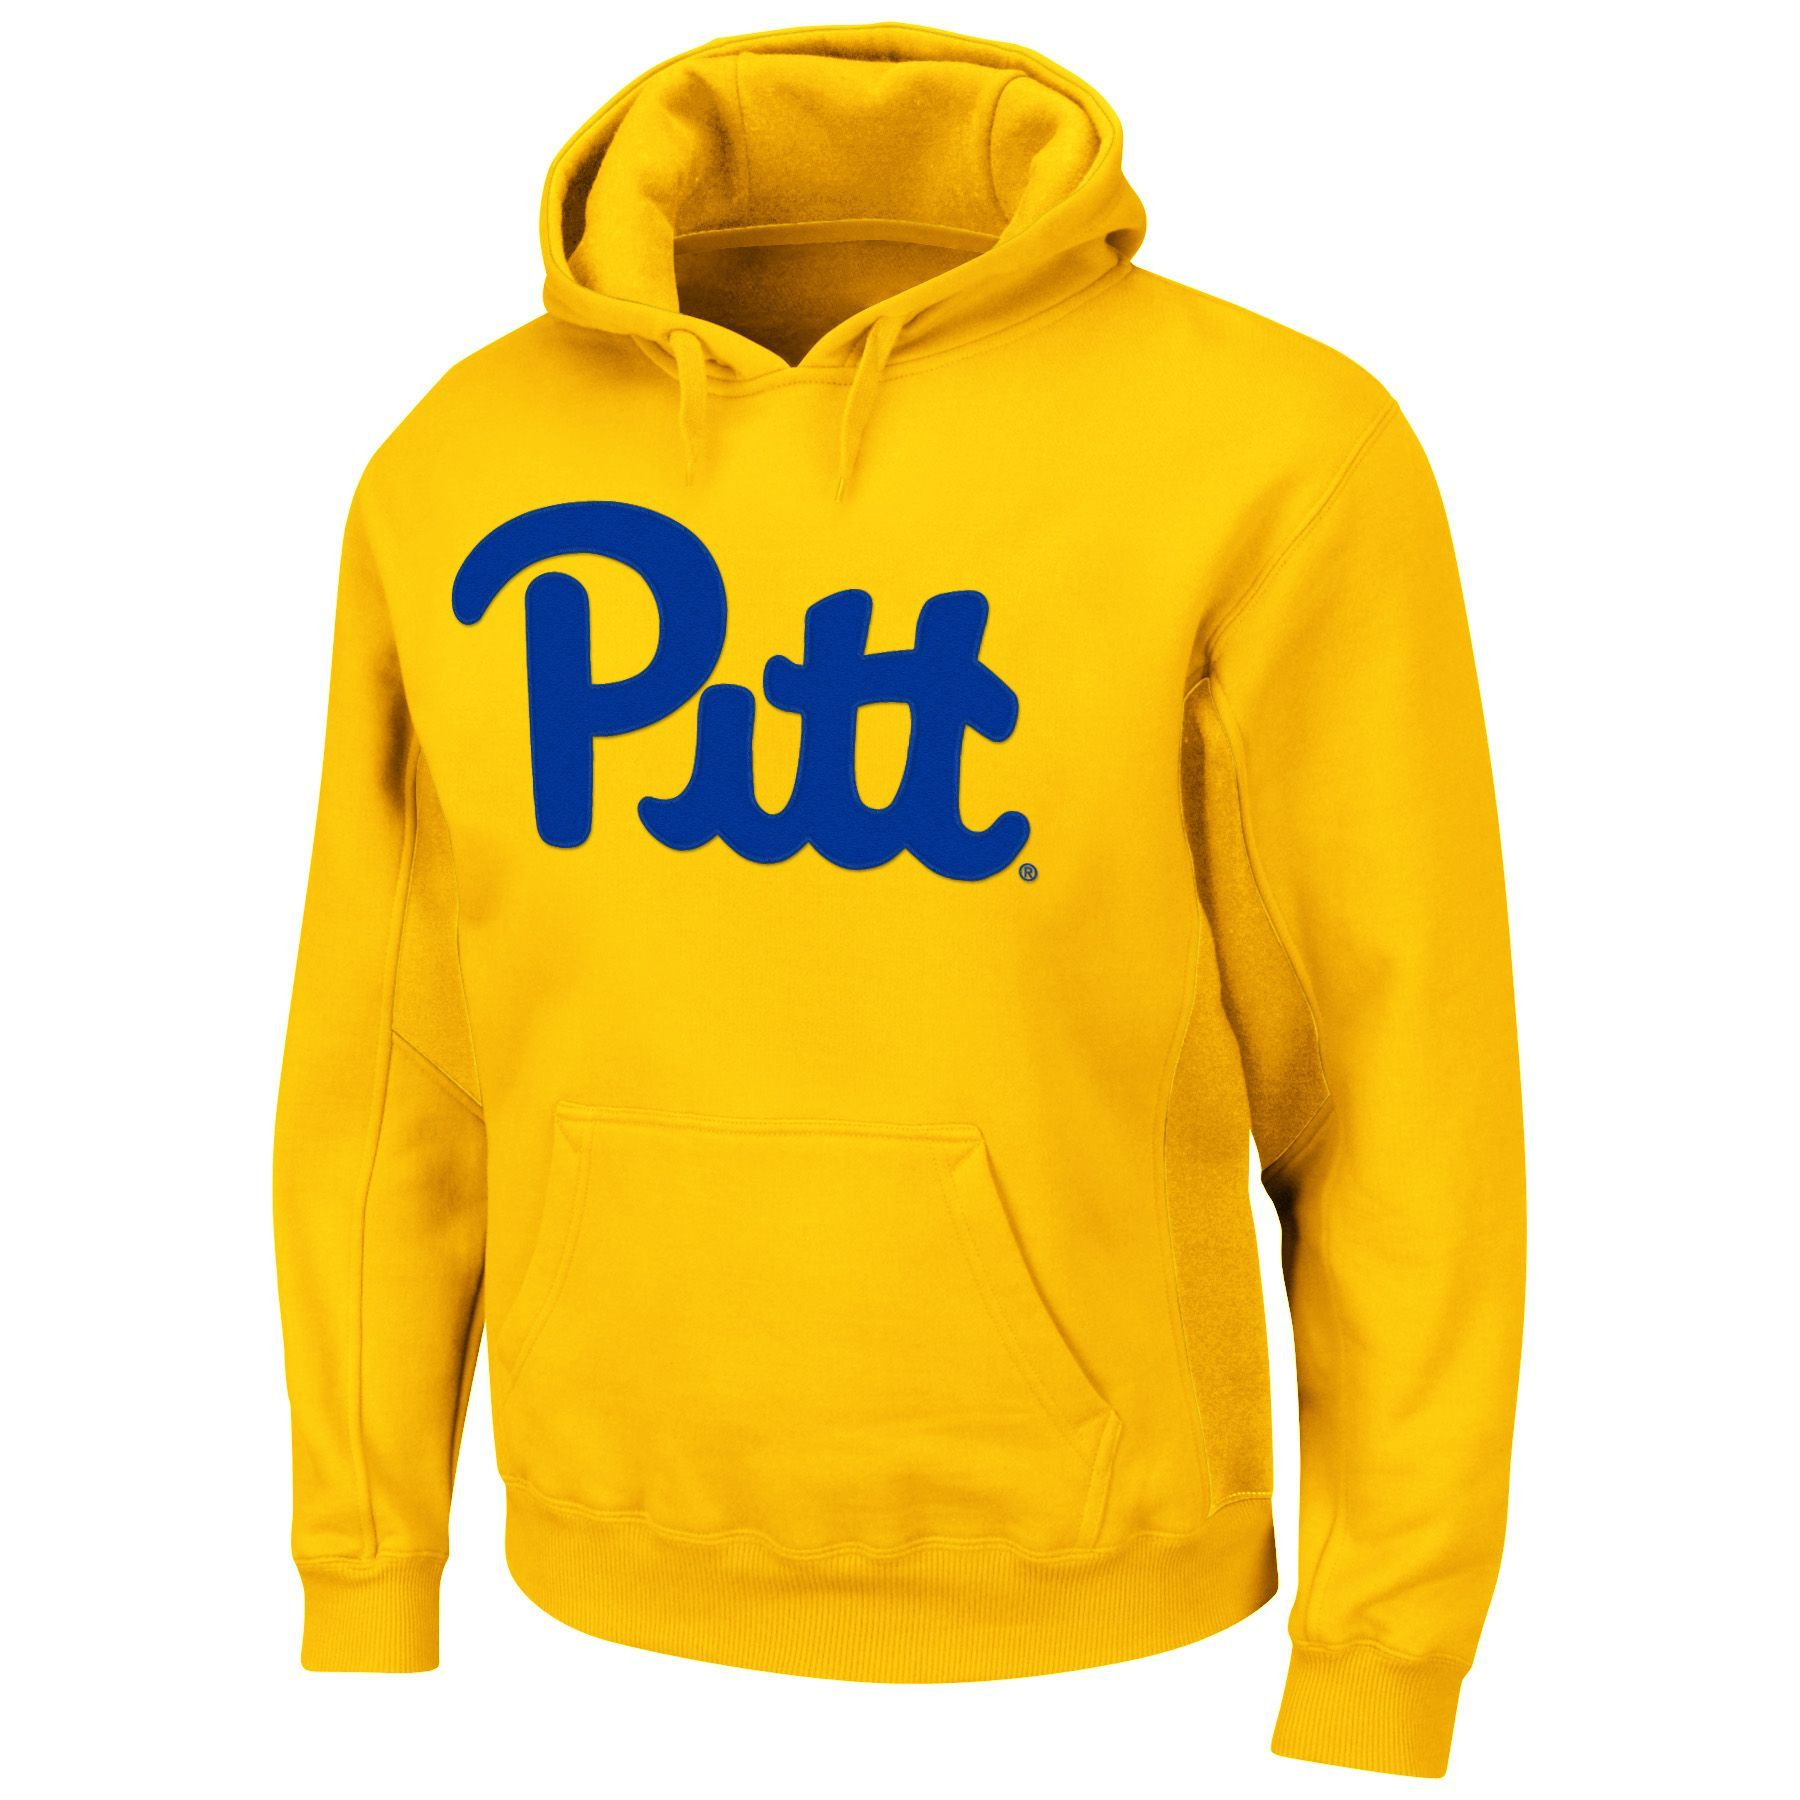 36ebff1f1 Pitt Panthers Script Gold Turf Pullover Hoody #H2P #ACC | My style ...